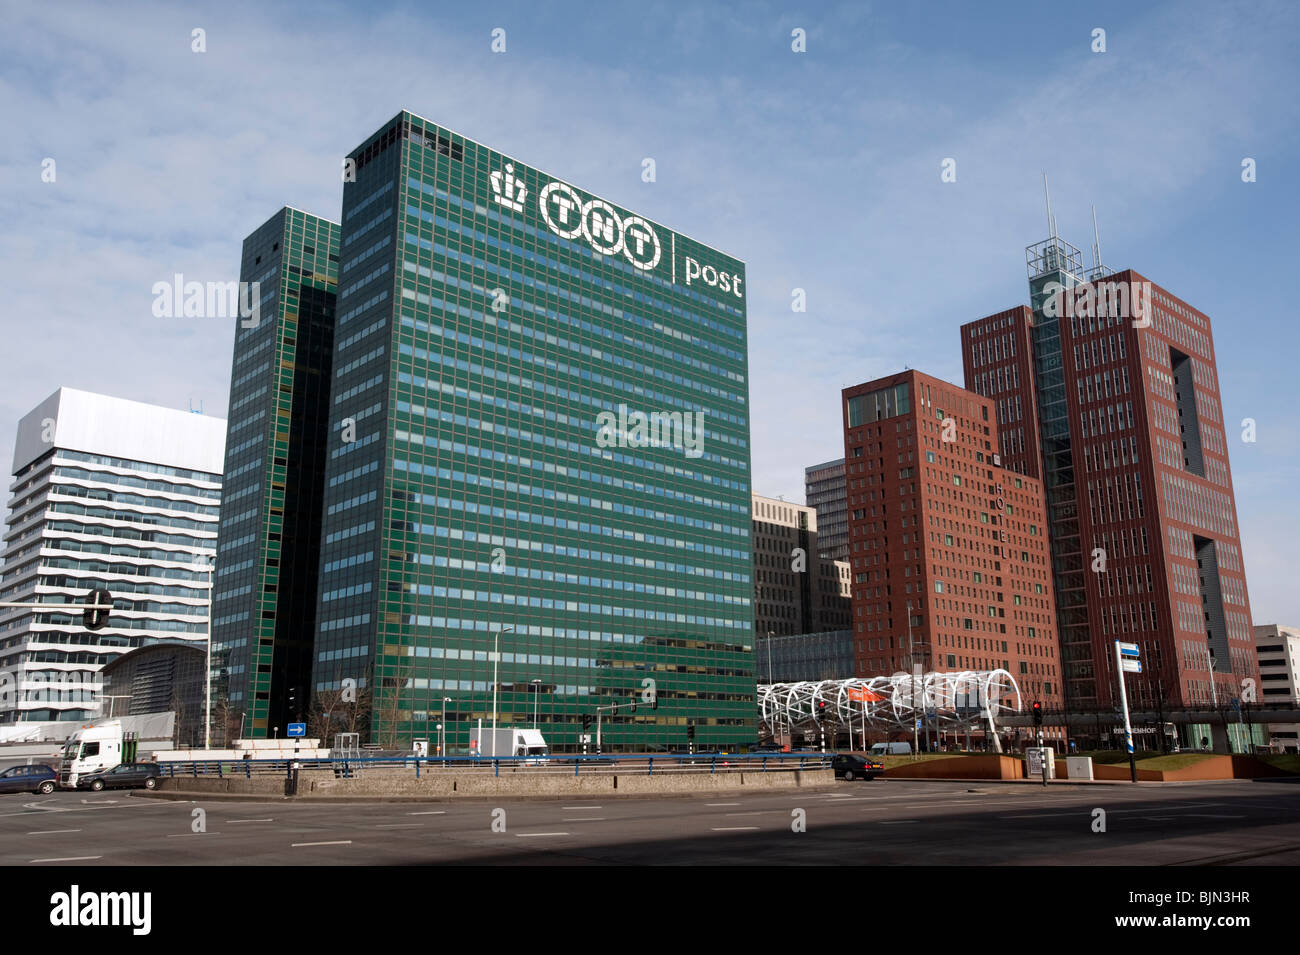 TNT postal company headquarters office tower in Central Business District in The Hague Netherlands - Stock Image